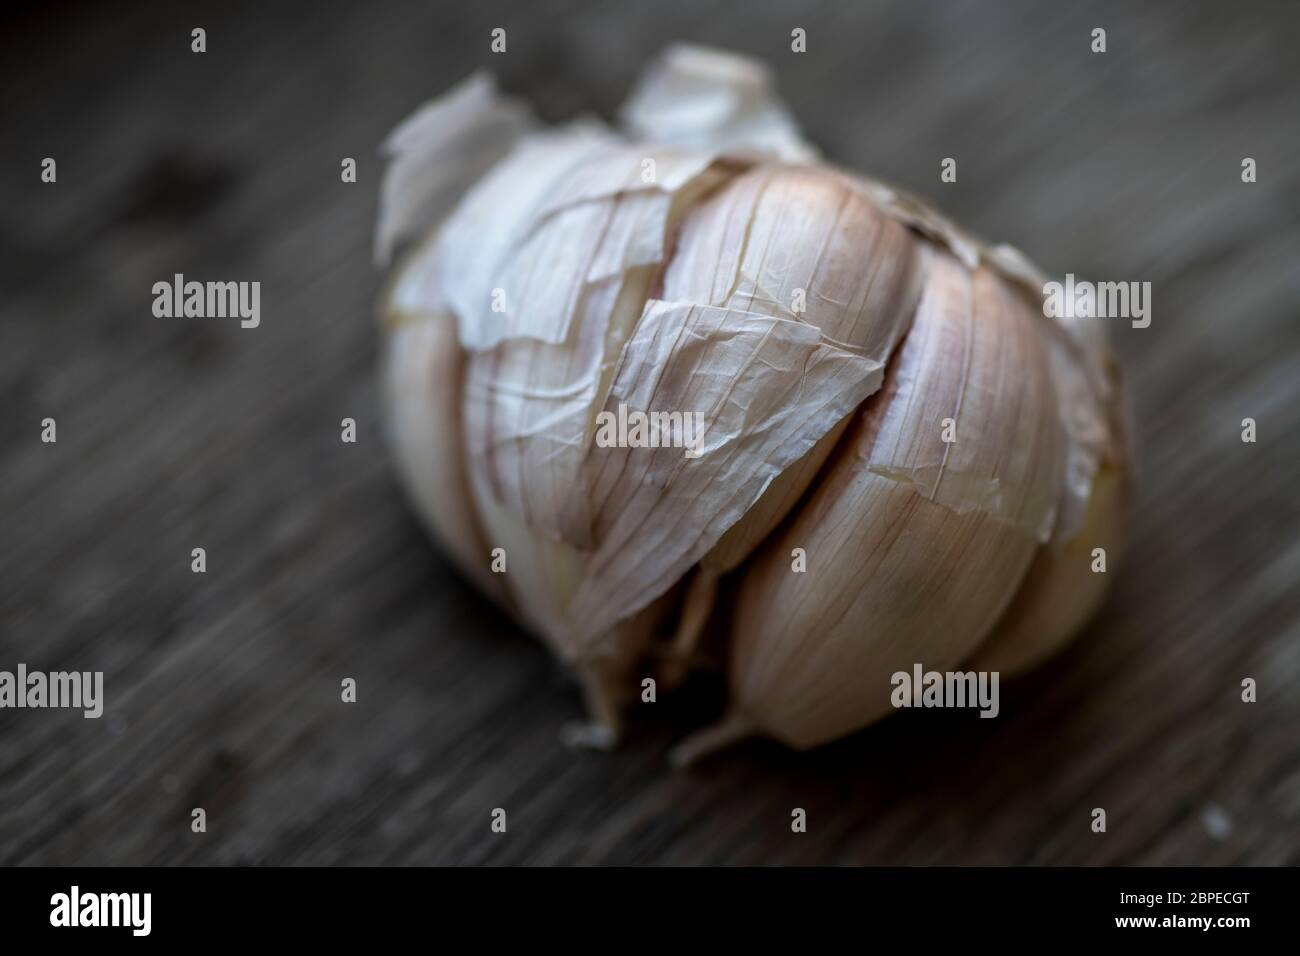 Few garlic bulbs and cloves over a wood table Stock Photo